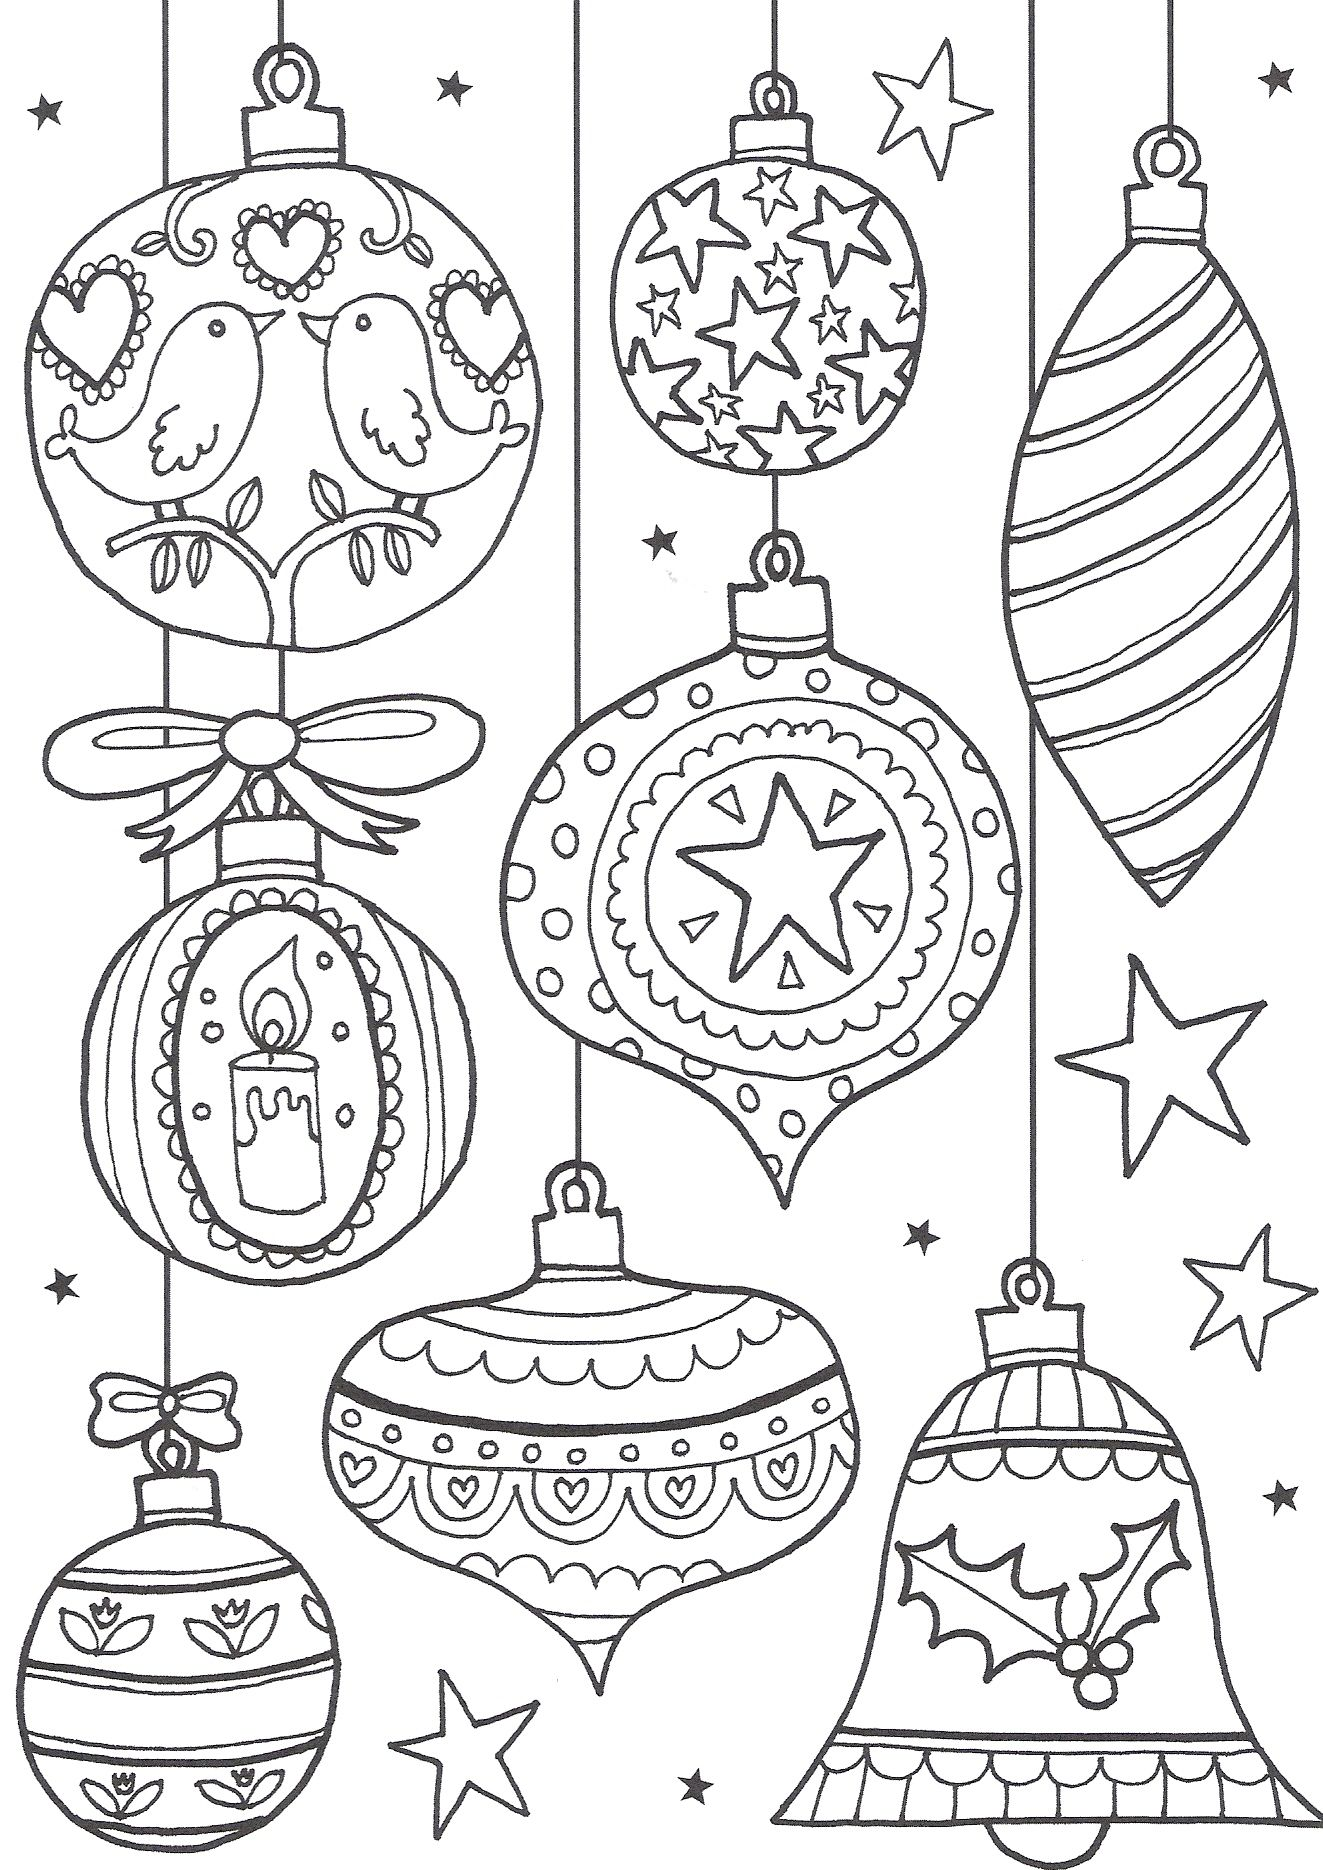 Christmas Printable Coloring Pages Com With Free Colouring For Adults The Ultimate Roundup